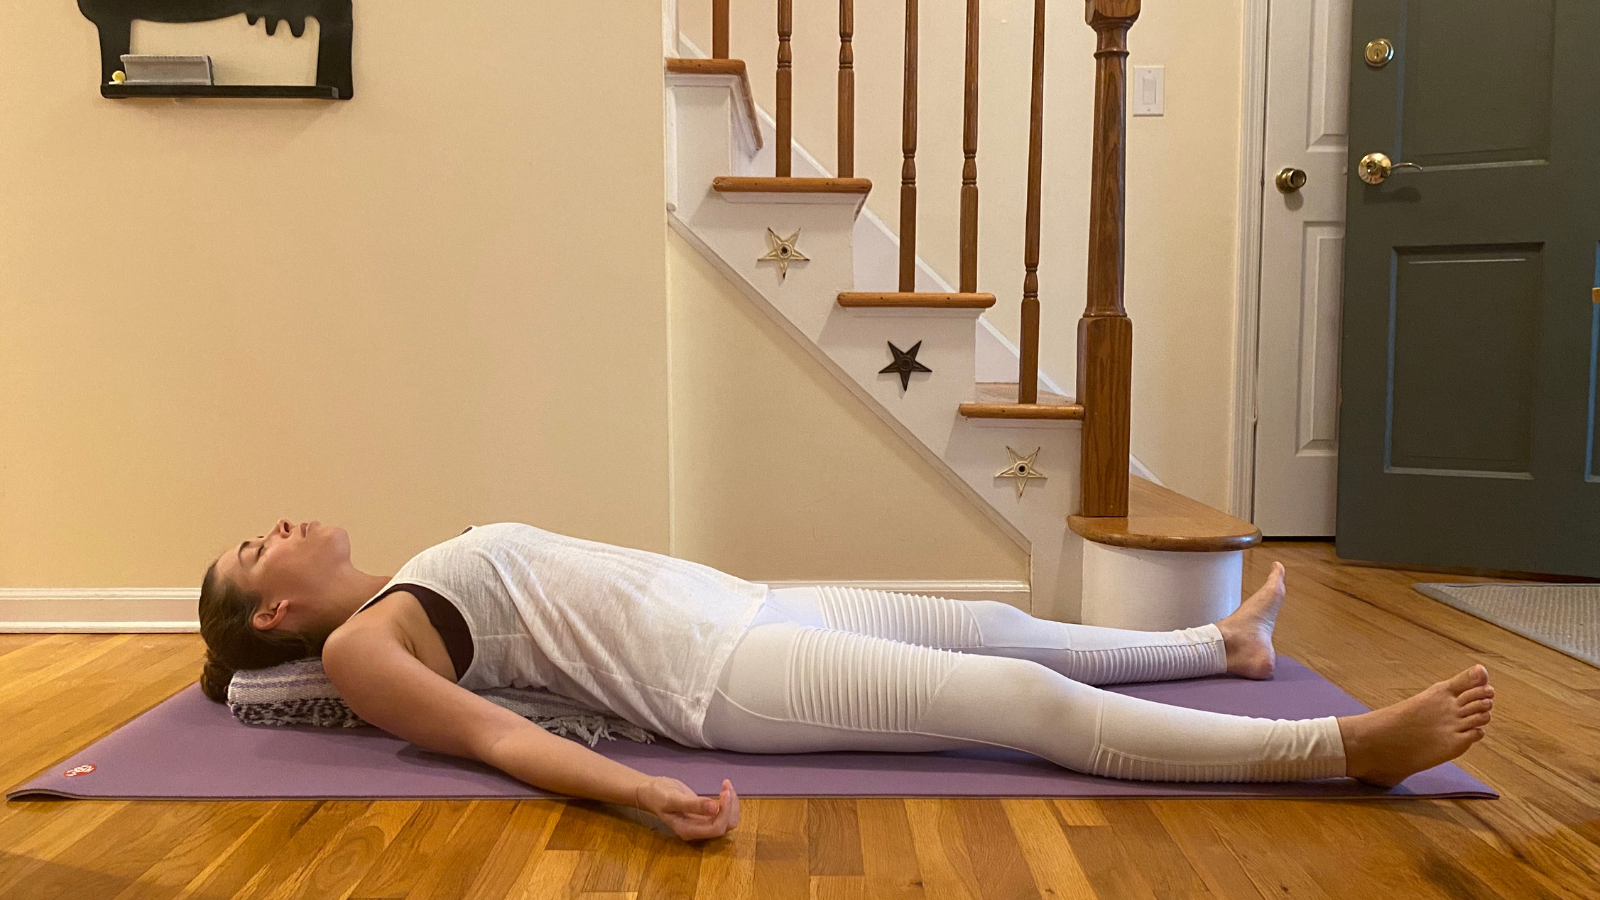 Supported Fish Pose also known as Restorative Matsyasana with only one blanket for a prop